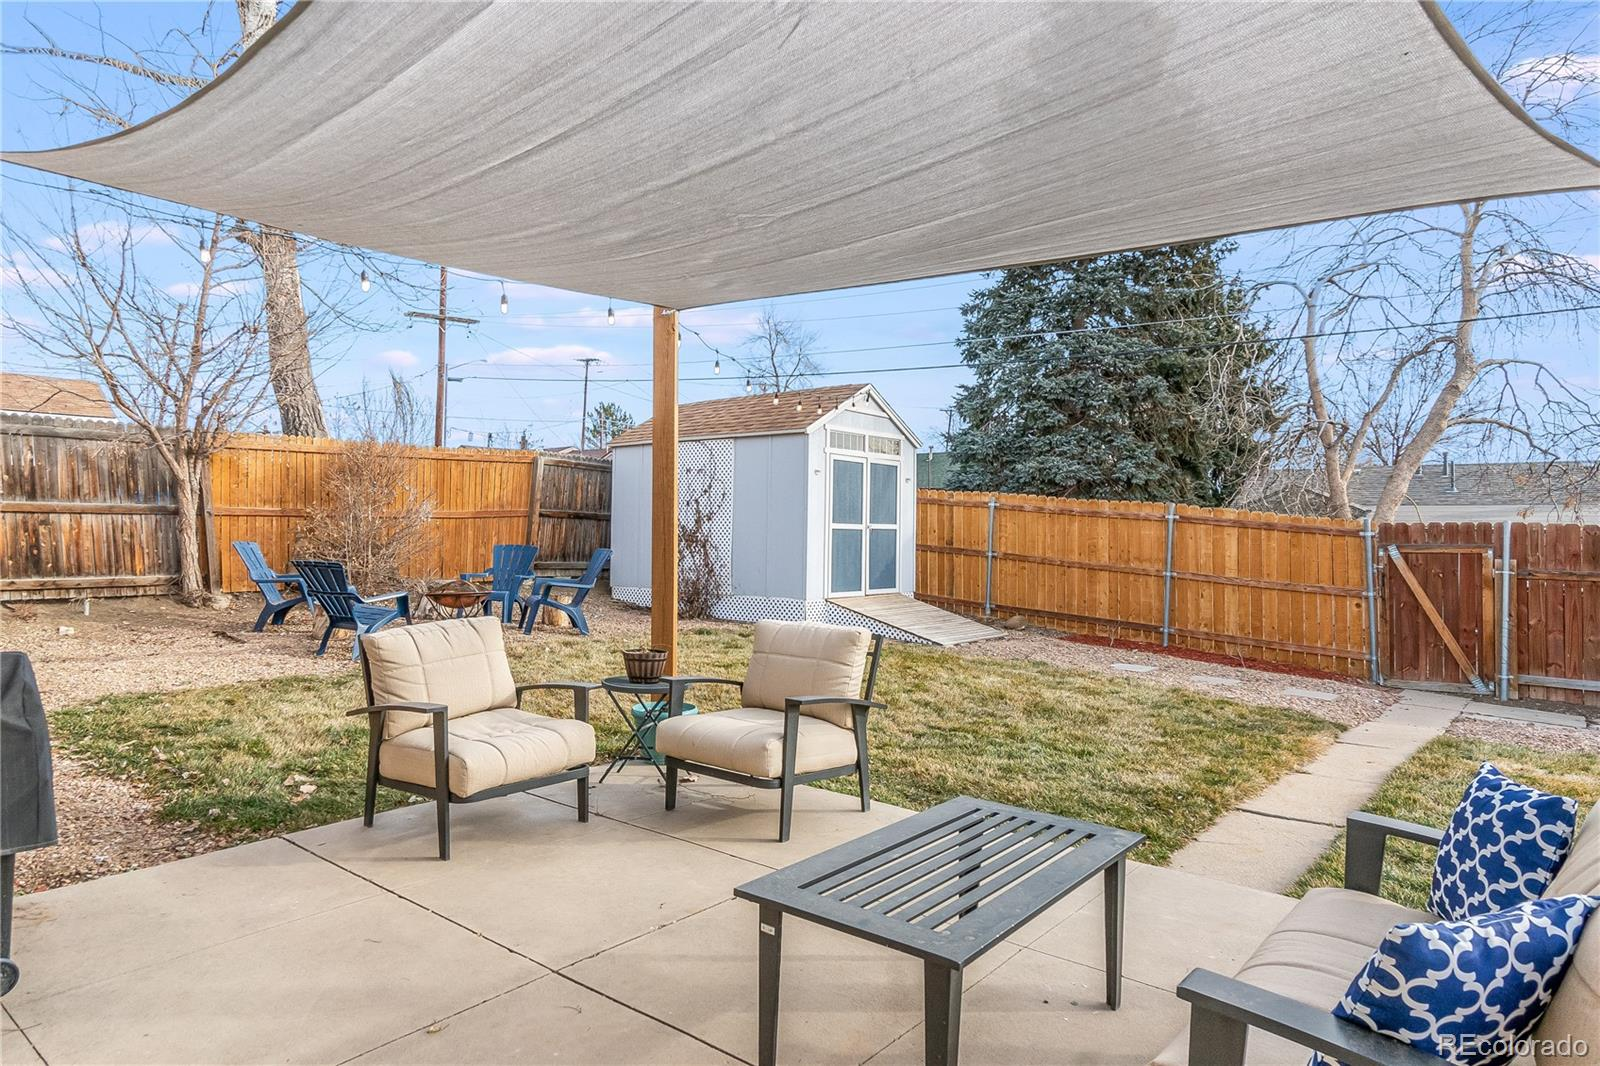 MLS# 3071138 - 22 - 9180 Emerson Street, Thornton, CO 80229